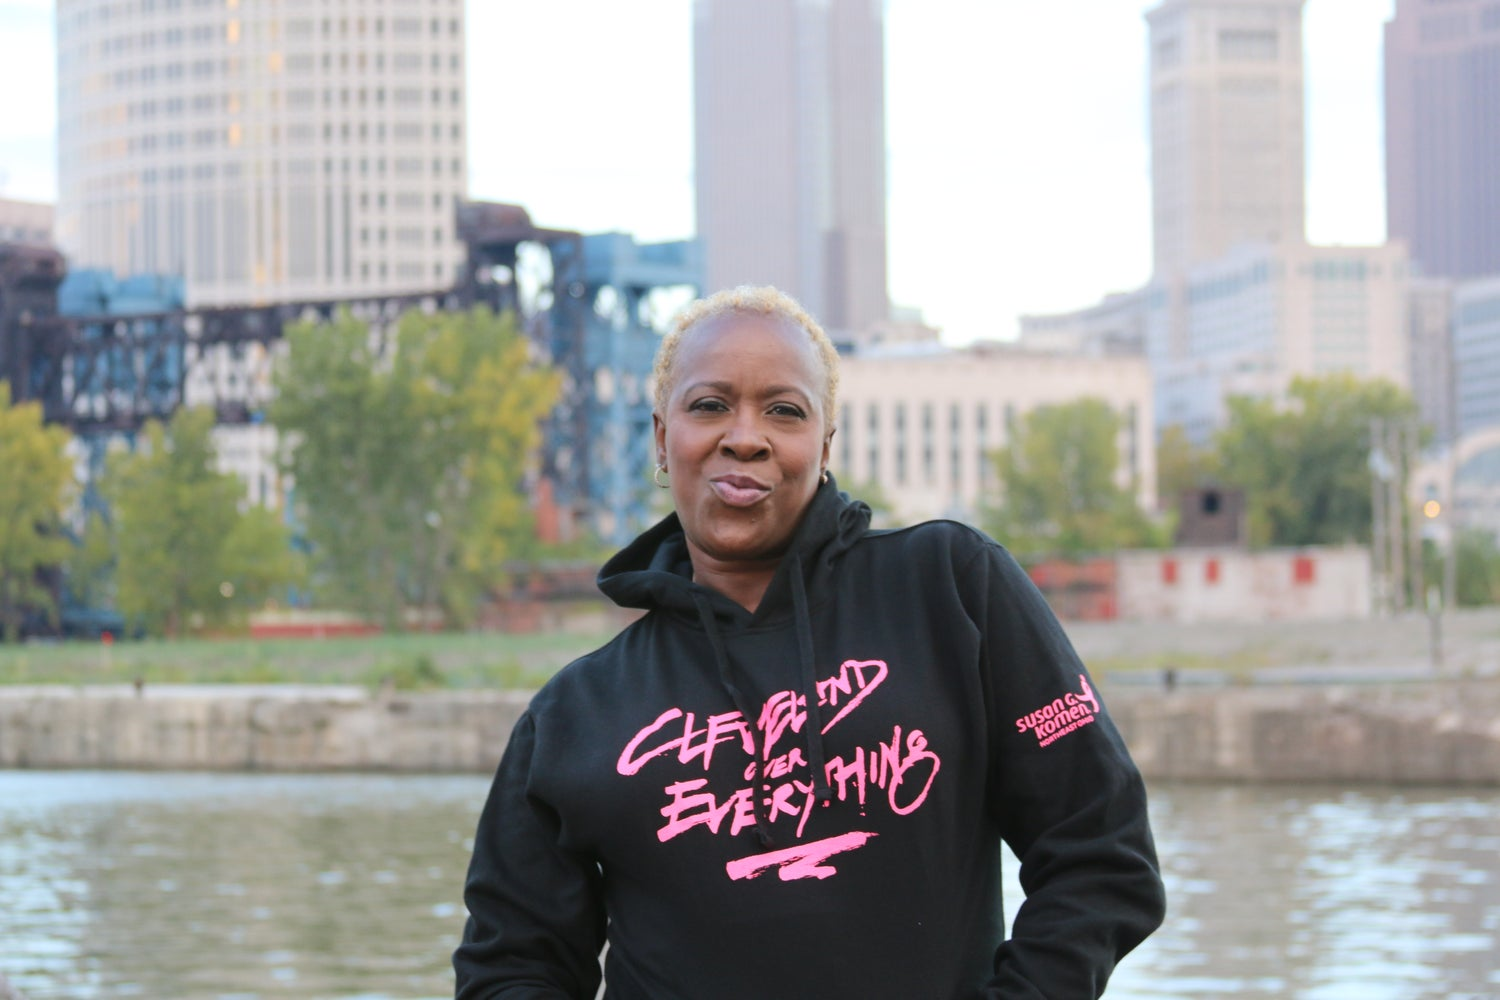 Image of Cleveland Over Everything Unisex Hoody (Pink Edition)